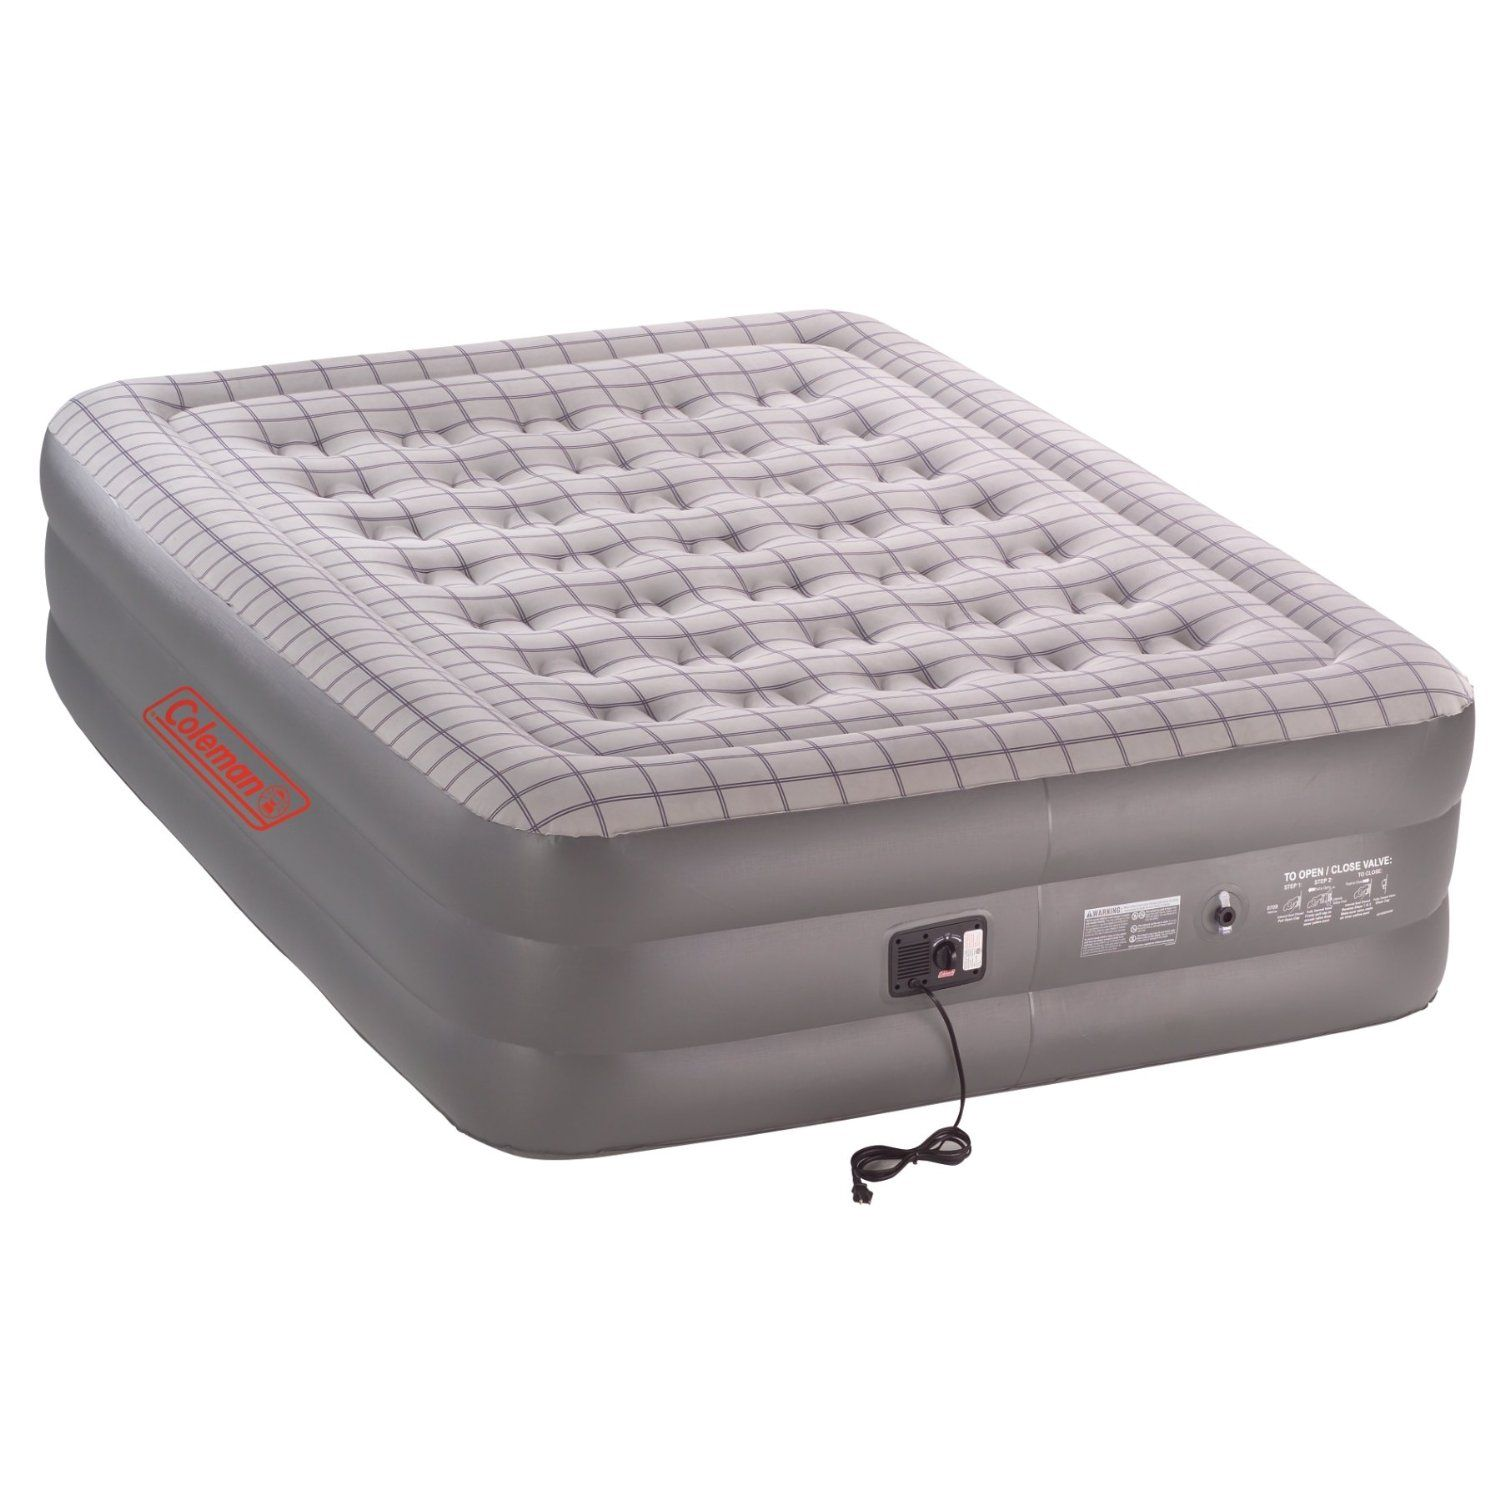 Best Coleman Air Mattress